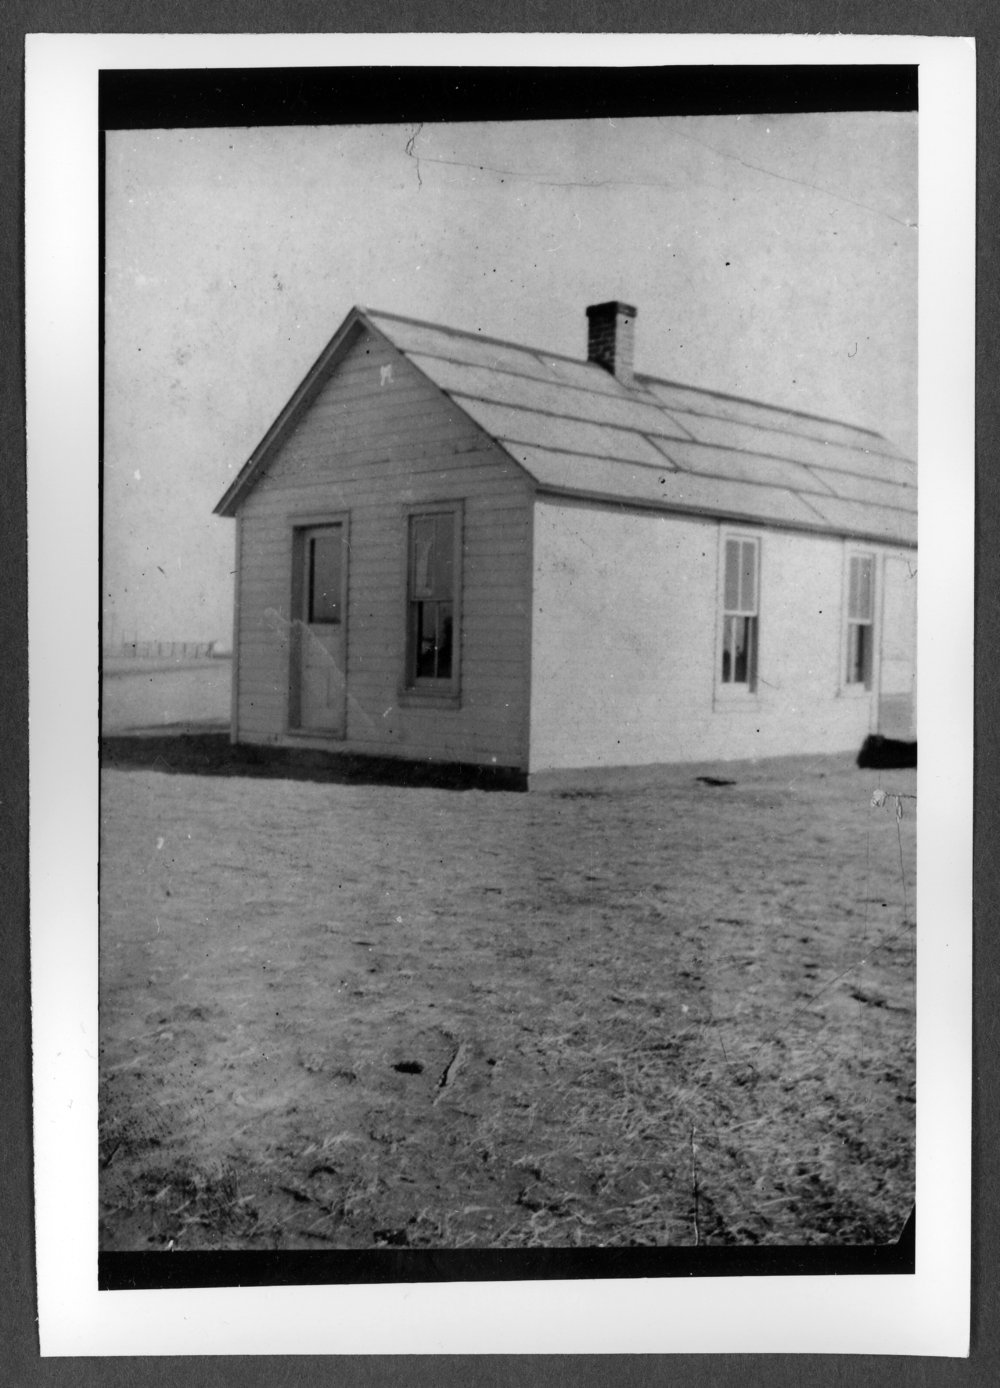 Scenes of Sherman County, Kansas - First home of Verne and Ellen Chambers, later made into the Edson, Kansas, post office.